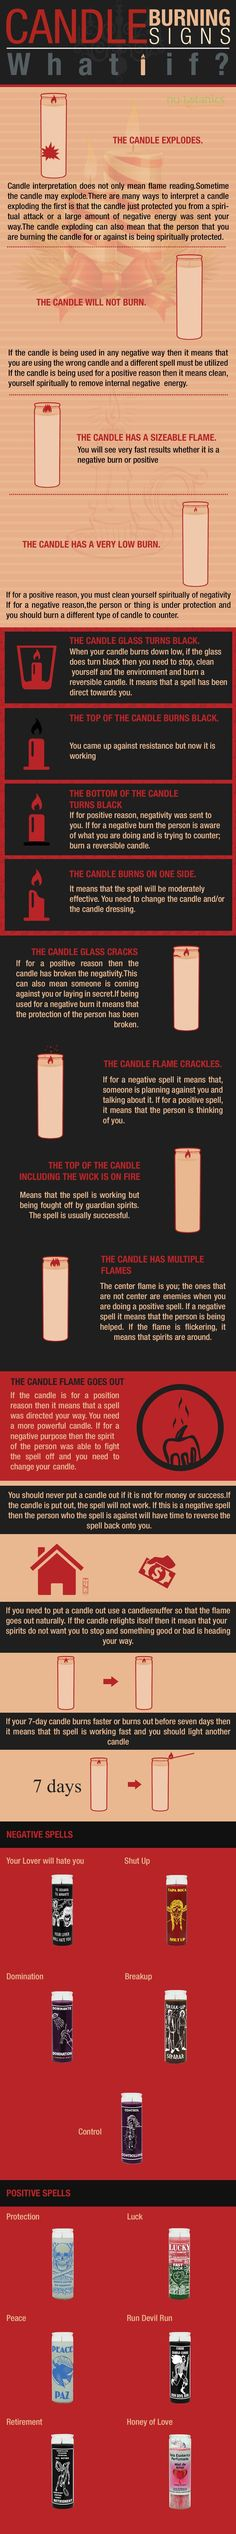 Magick, Witchcraft & Candle Burning: Divination & signs: How to interpret the different ways your candles burnt.